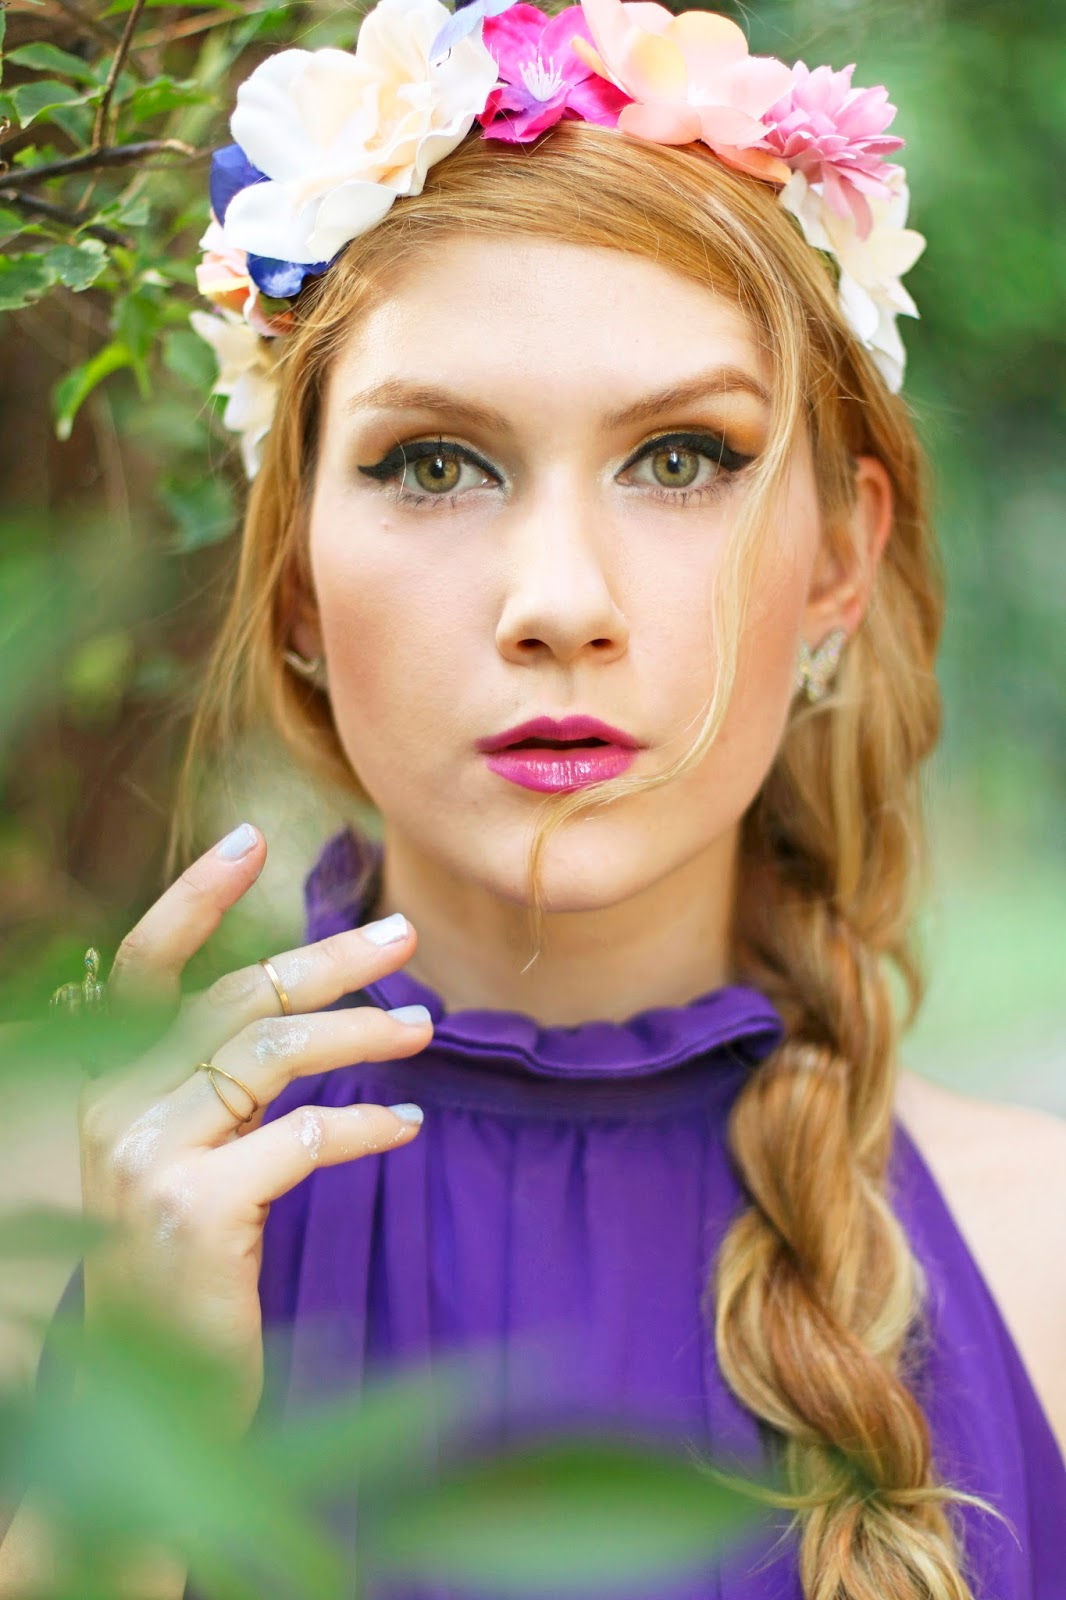 Floral crowns are the perfect accessory for Spring!